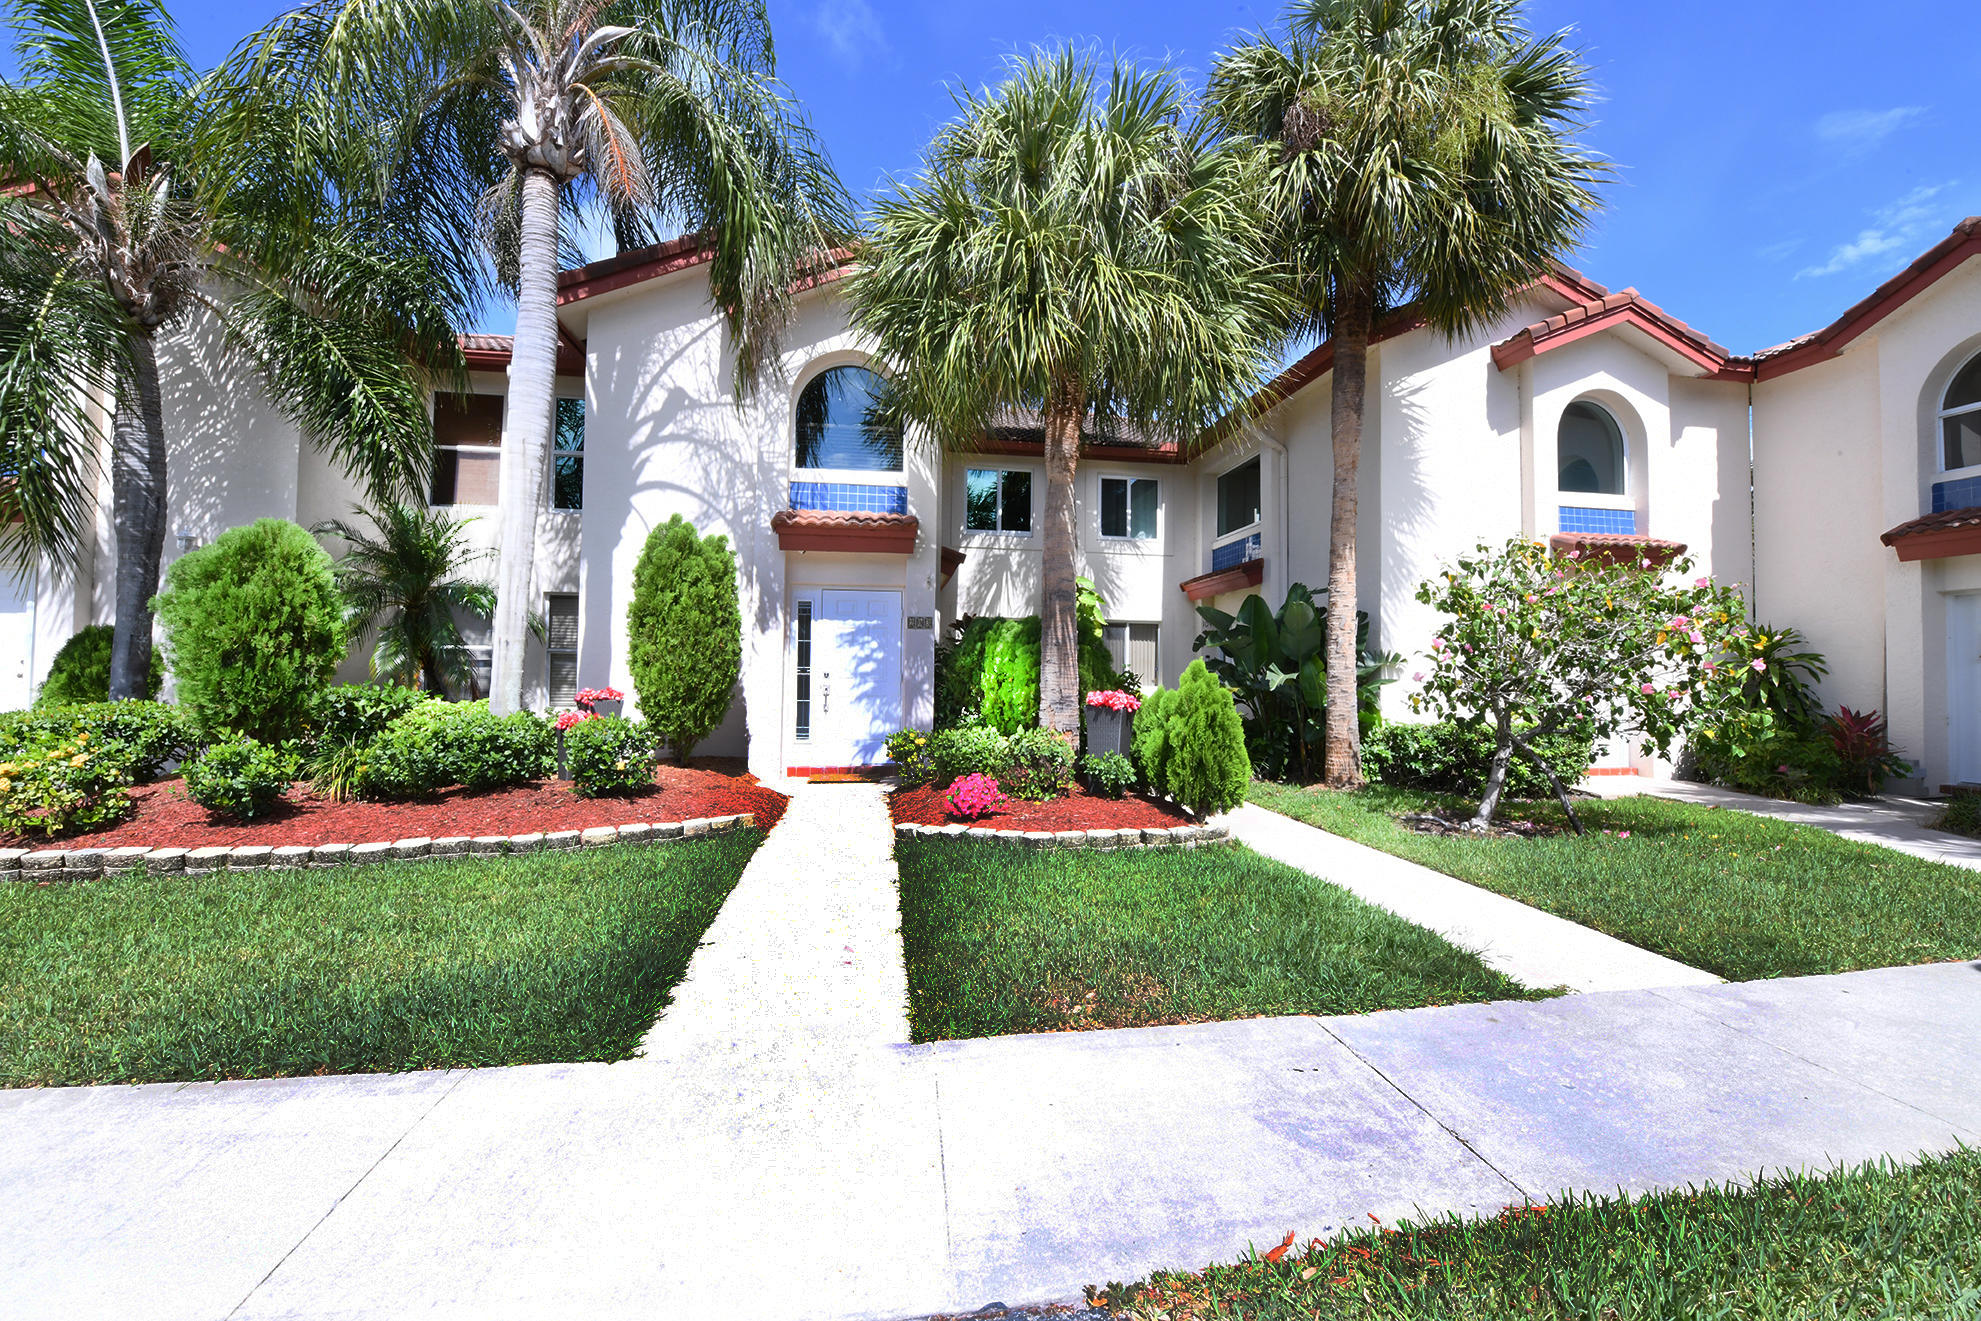 460 NW Nw 67 Th Street L103 For Sale 10720972, FL